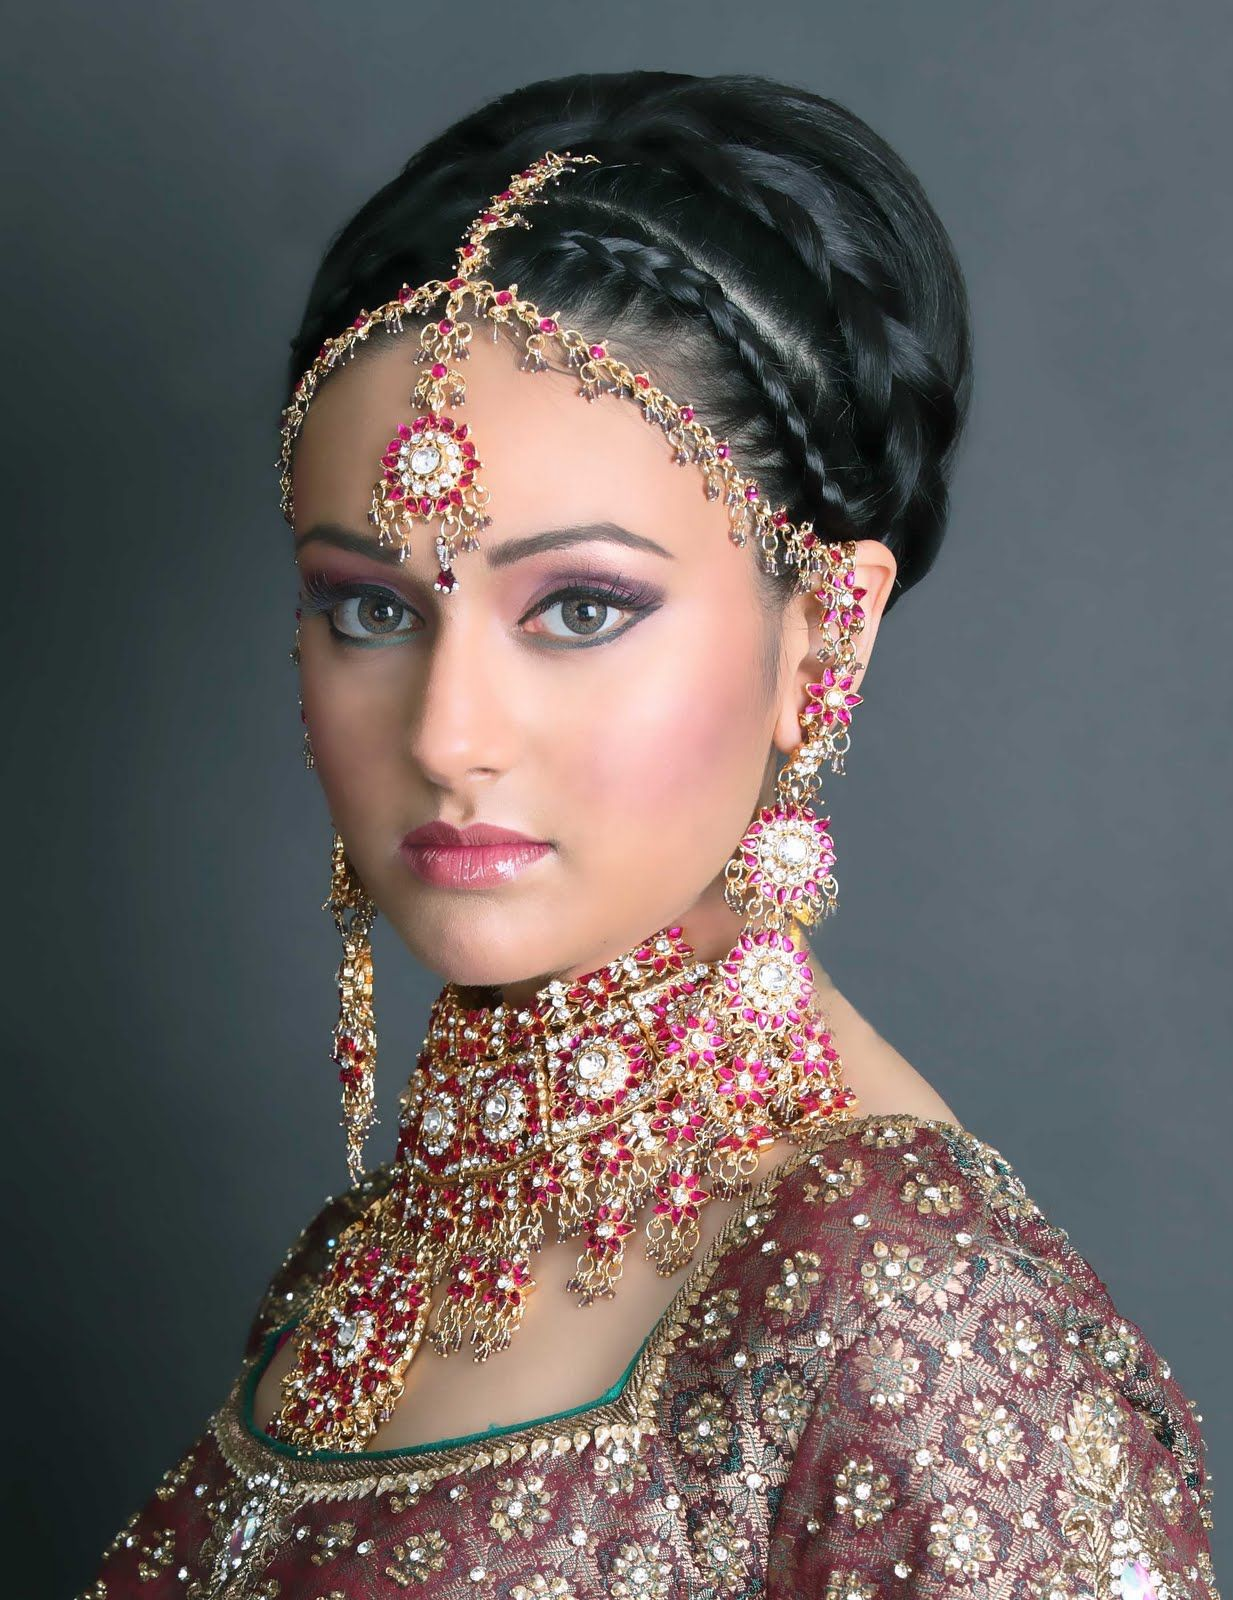 indian wedding hairdos | Free Wallpapers Download, Desktop ...